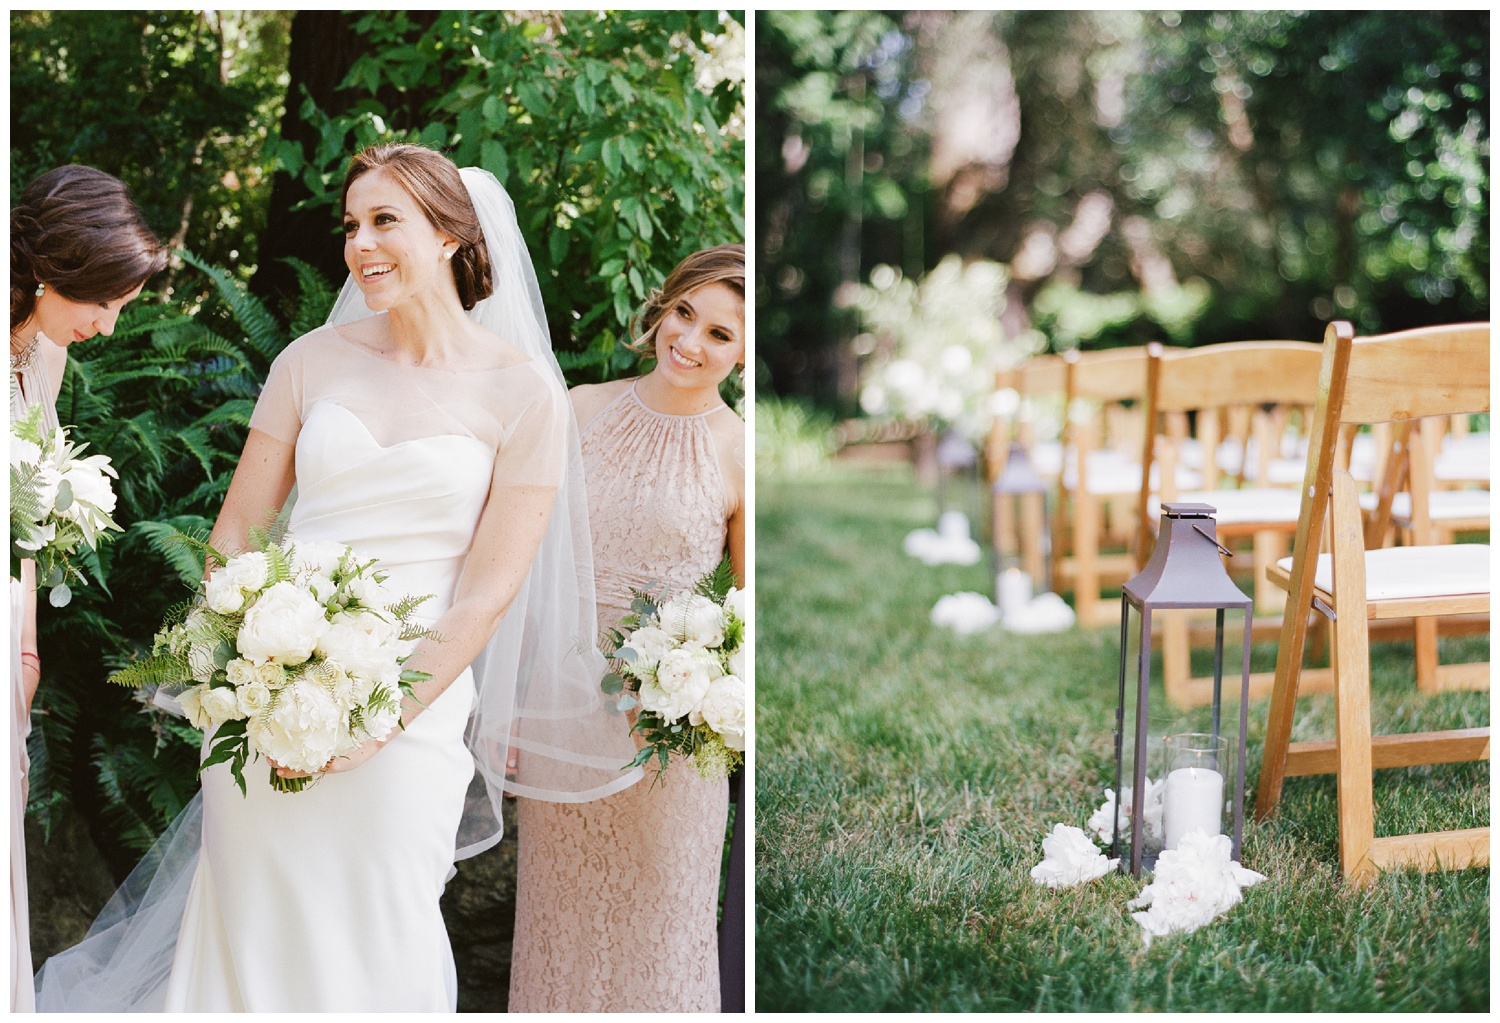 The bride and the outdoor ceremony space in a private estate in Woodside, California; Sylvie Gil Photography